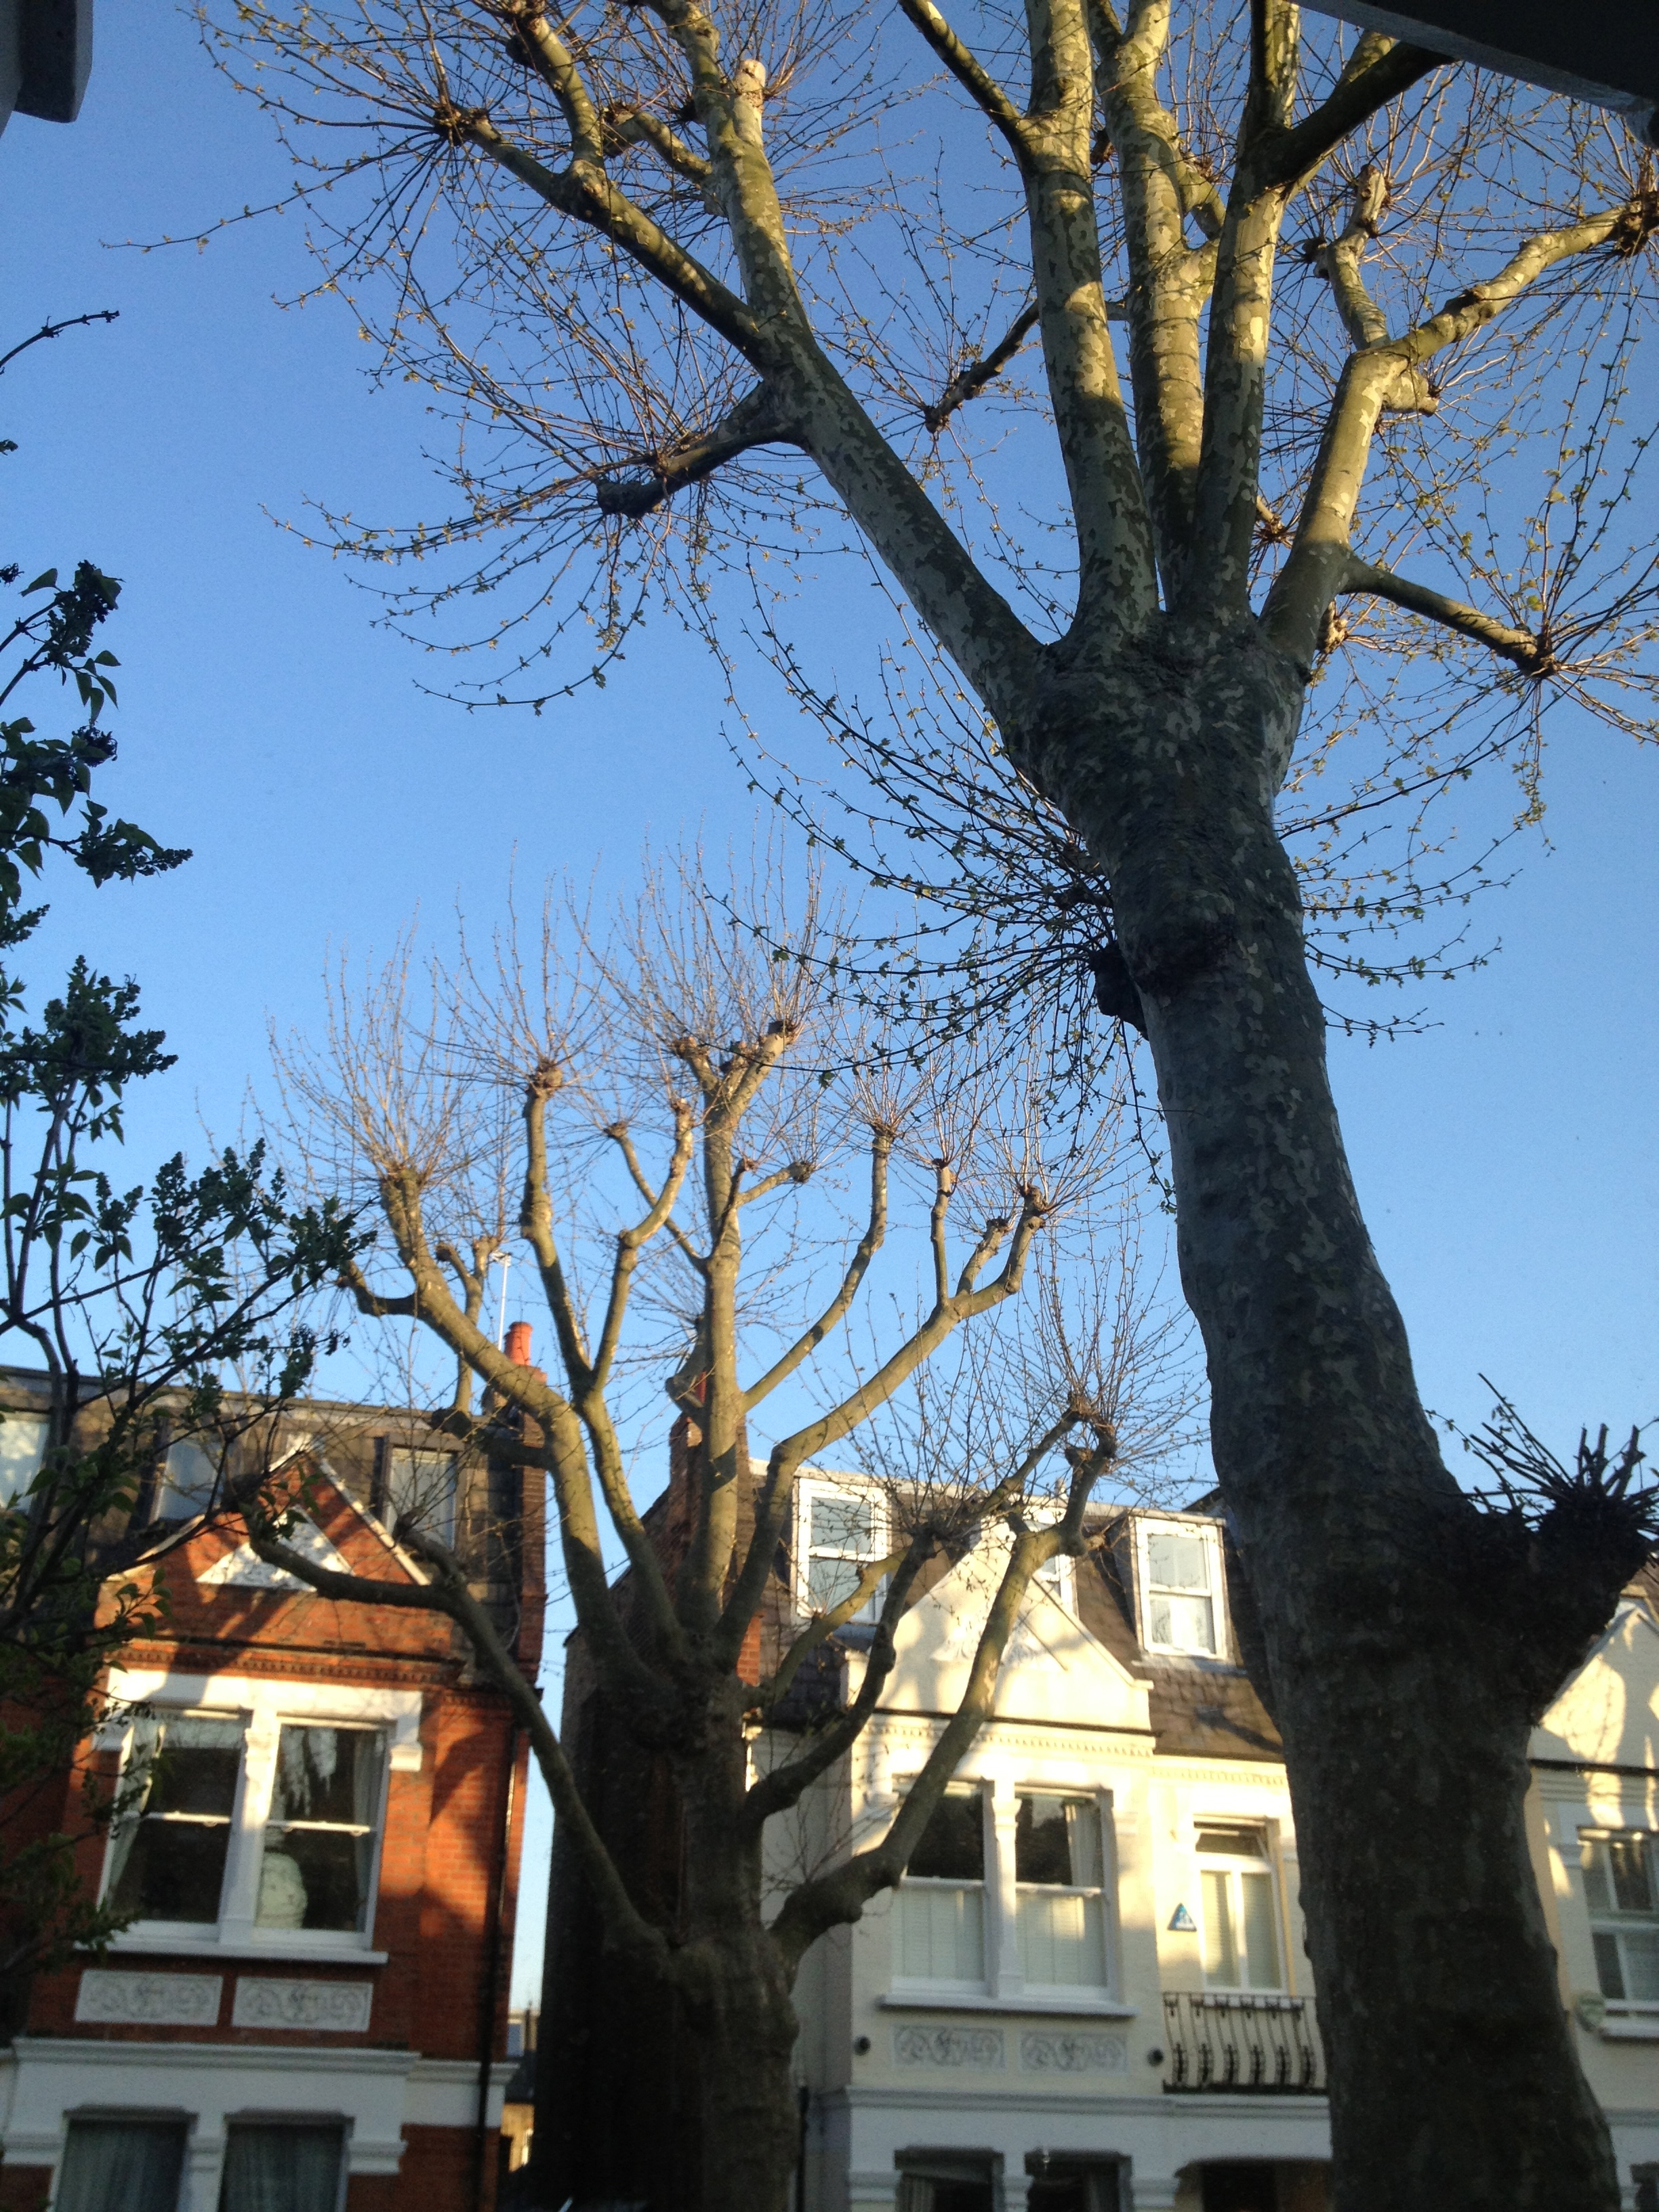 Spring has finally arrived in the UK and all the London Plane Trees are finally growing some leaves.